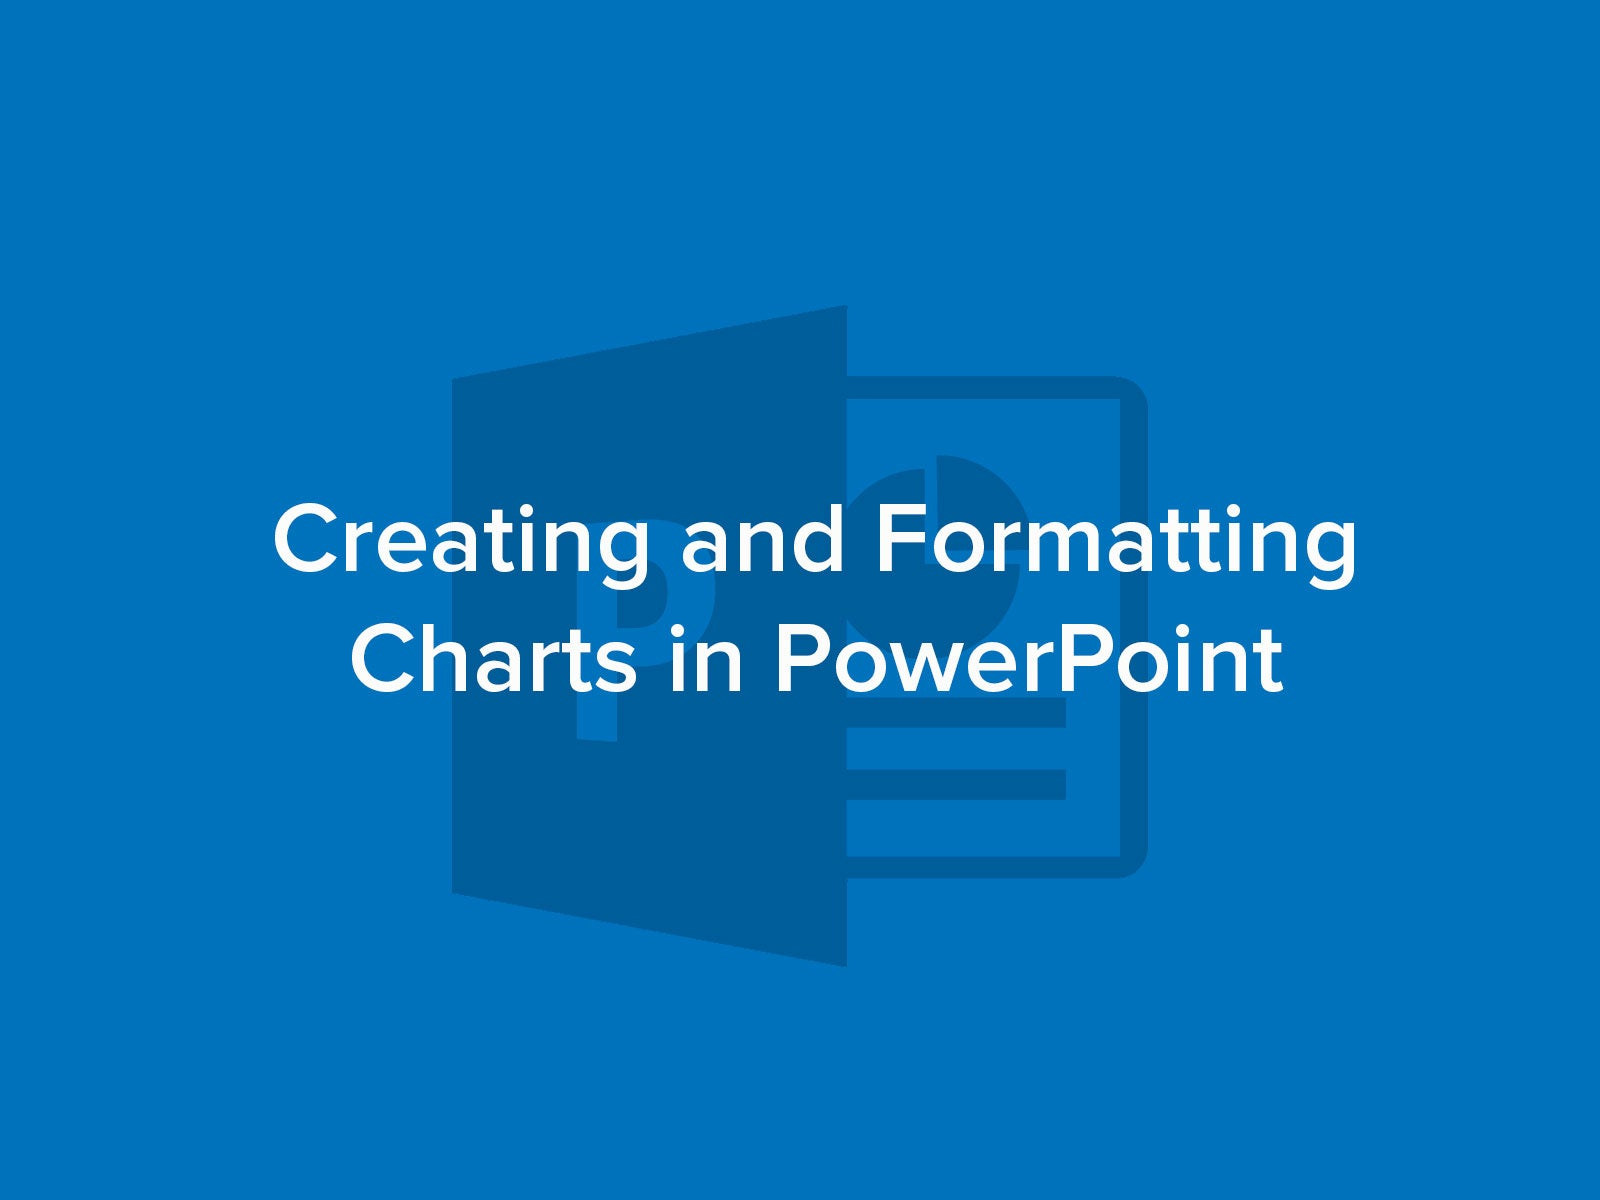 How to Create and Format Charts in PowerPoint